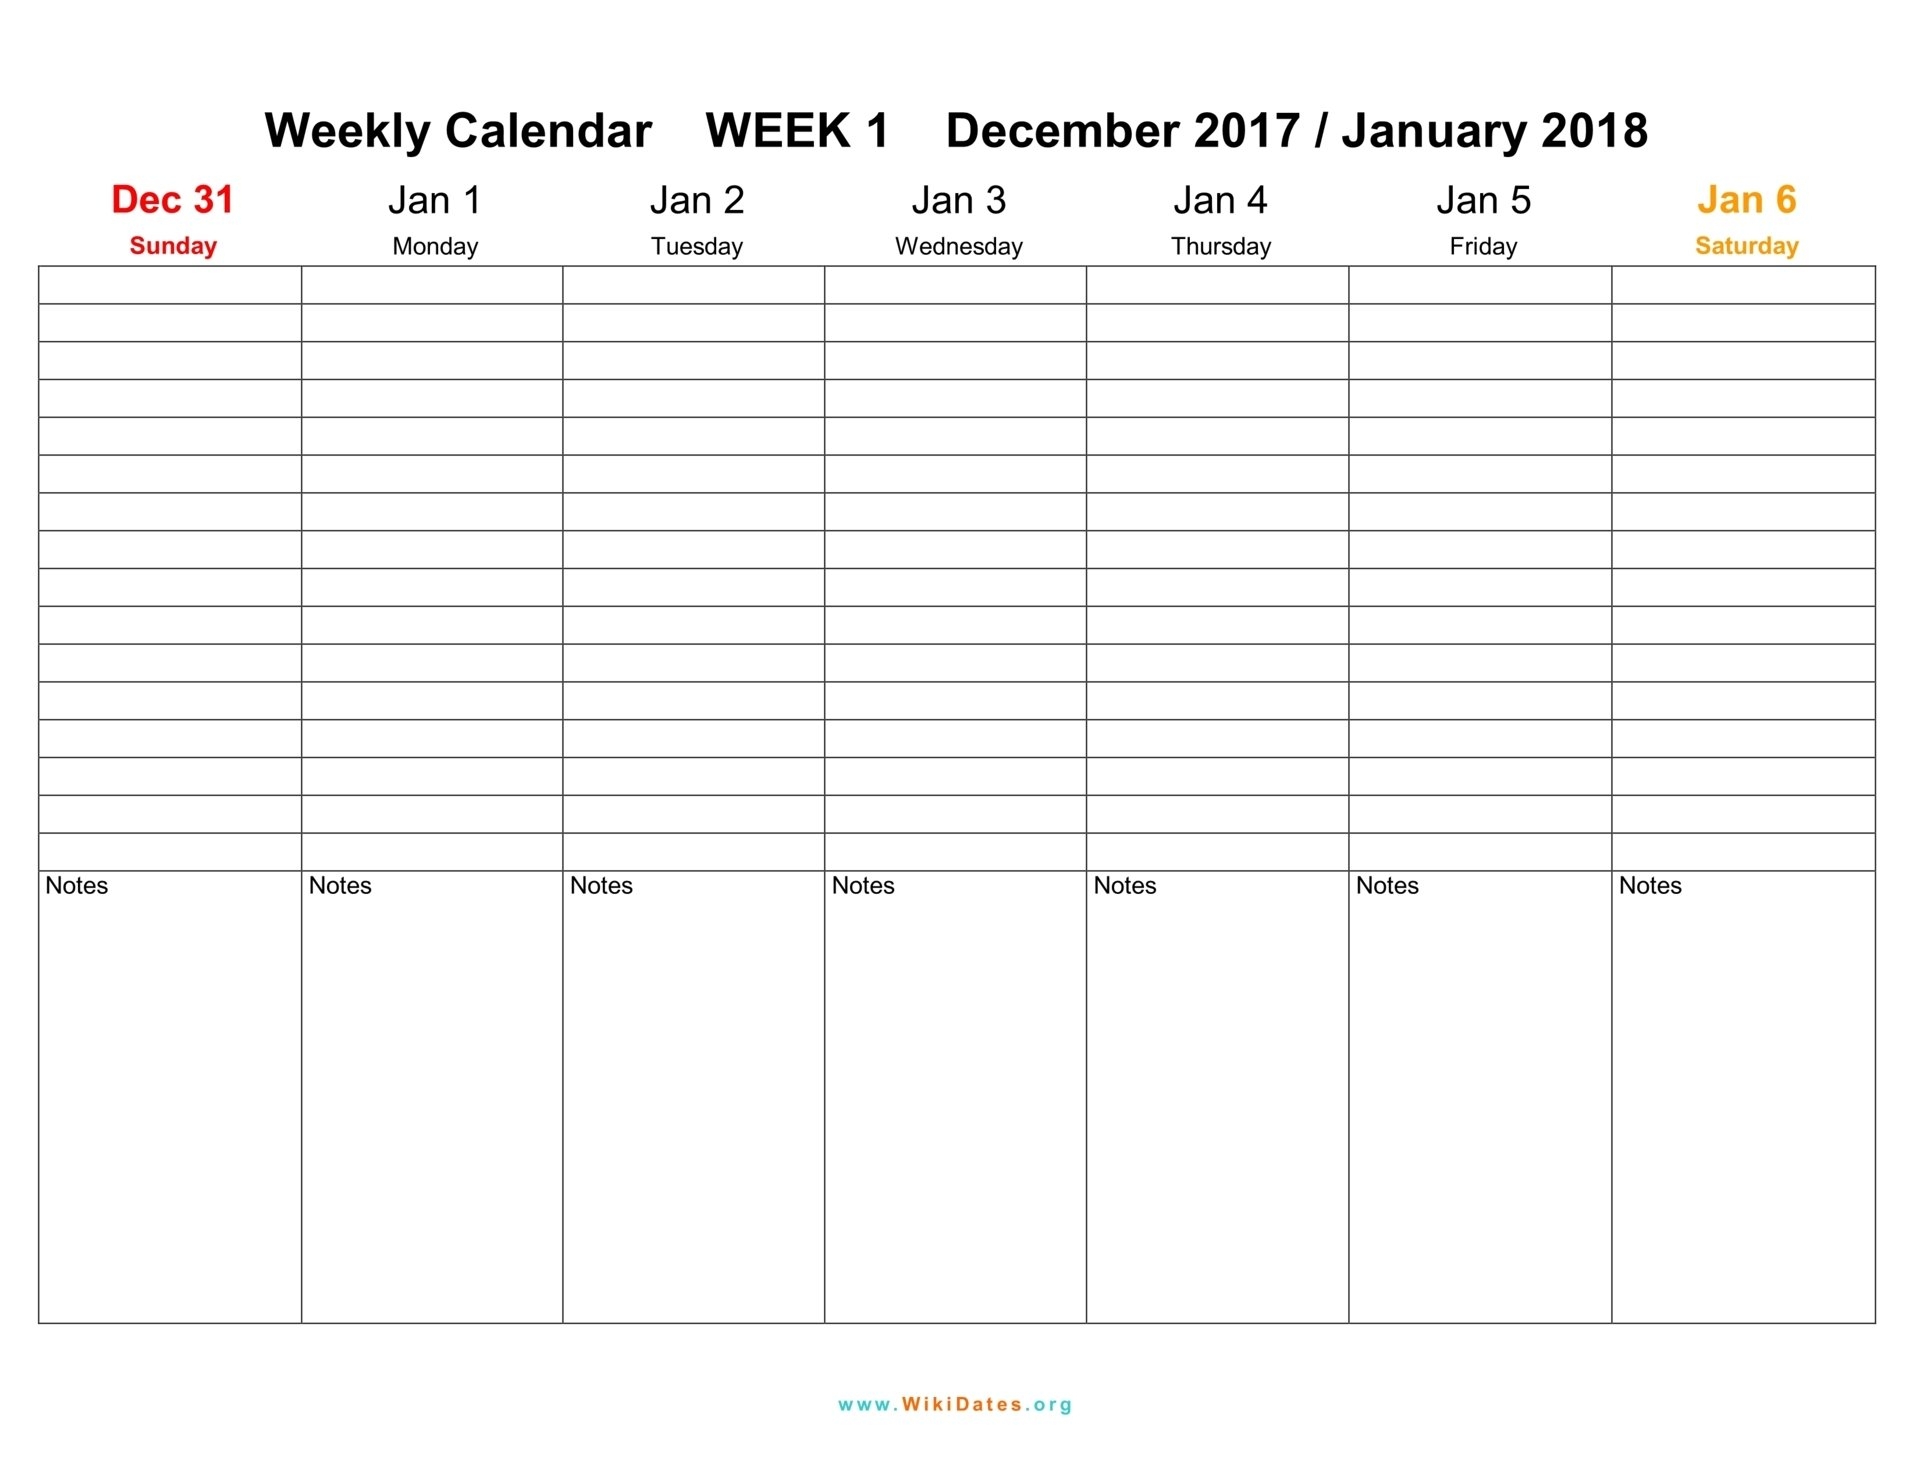 Weekly Calendar - Download Weekly Calendar 2017 And 2018 One Week Calendr To Prink